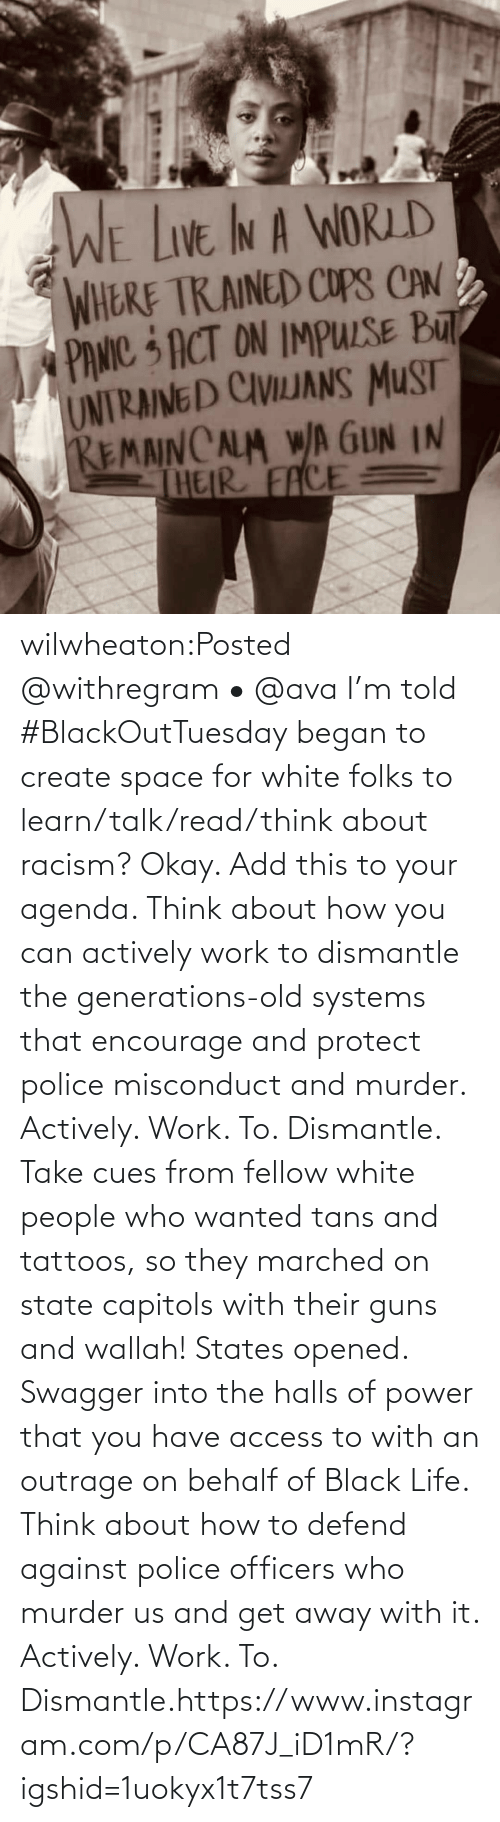 add: wilwheaton:Posted @withregram • @ava I'm told #BlackOutTuesday began to create space for white folks to learn/talk/read/think about racism? Okay. Add this to your agenda. Think about how you can actively work to dismantle the generations-old systems that encourage and protect police misconduct and murder. Actively. Work. To. Dismantle. Take cues from fellow white people who wanted tans and tattoos, so they marched on state capitols with their guns and wallah! States opened. Swagger into the halls of power that you have access to with an outrage on behalf of Black Life. Think about how to defend against police officers who murder us and get away with it. Actively. Work. To. Dismantle.https://www.instagram.com/p/CA87J_iD1mR/?igshid=1uokyx1t7tss7